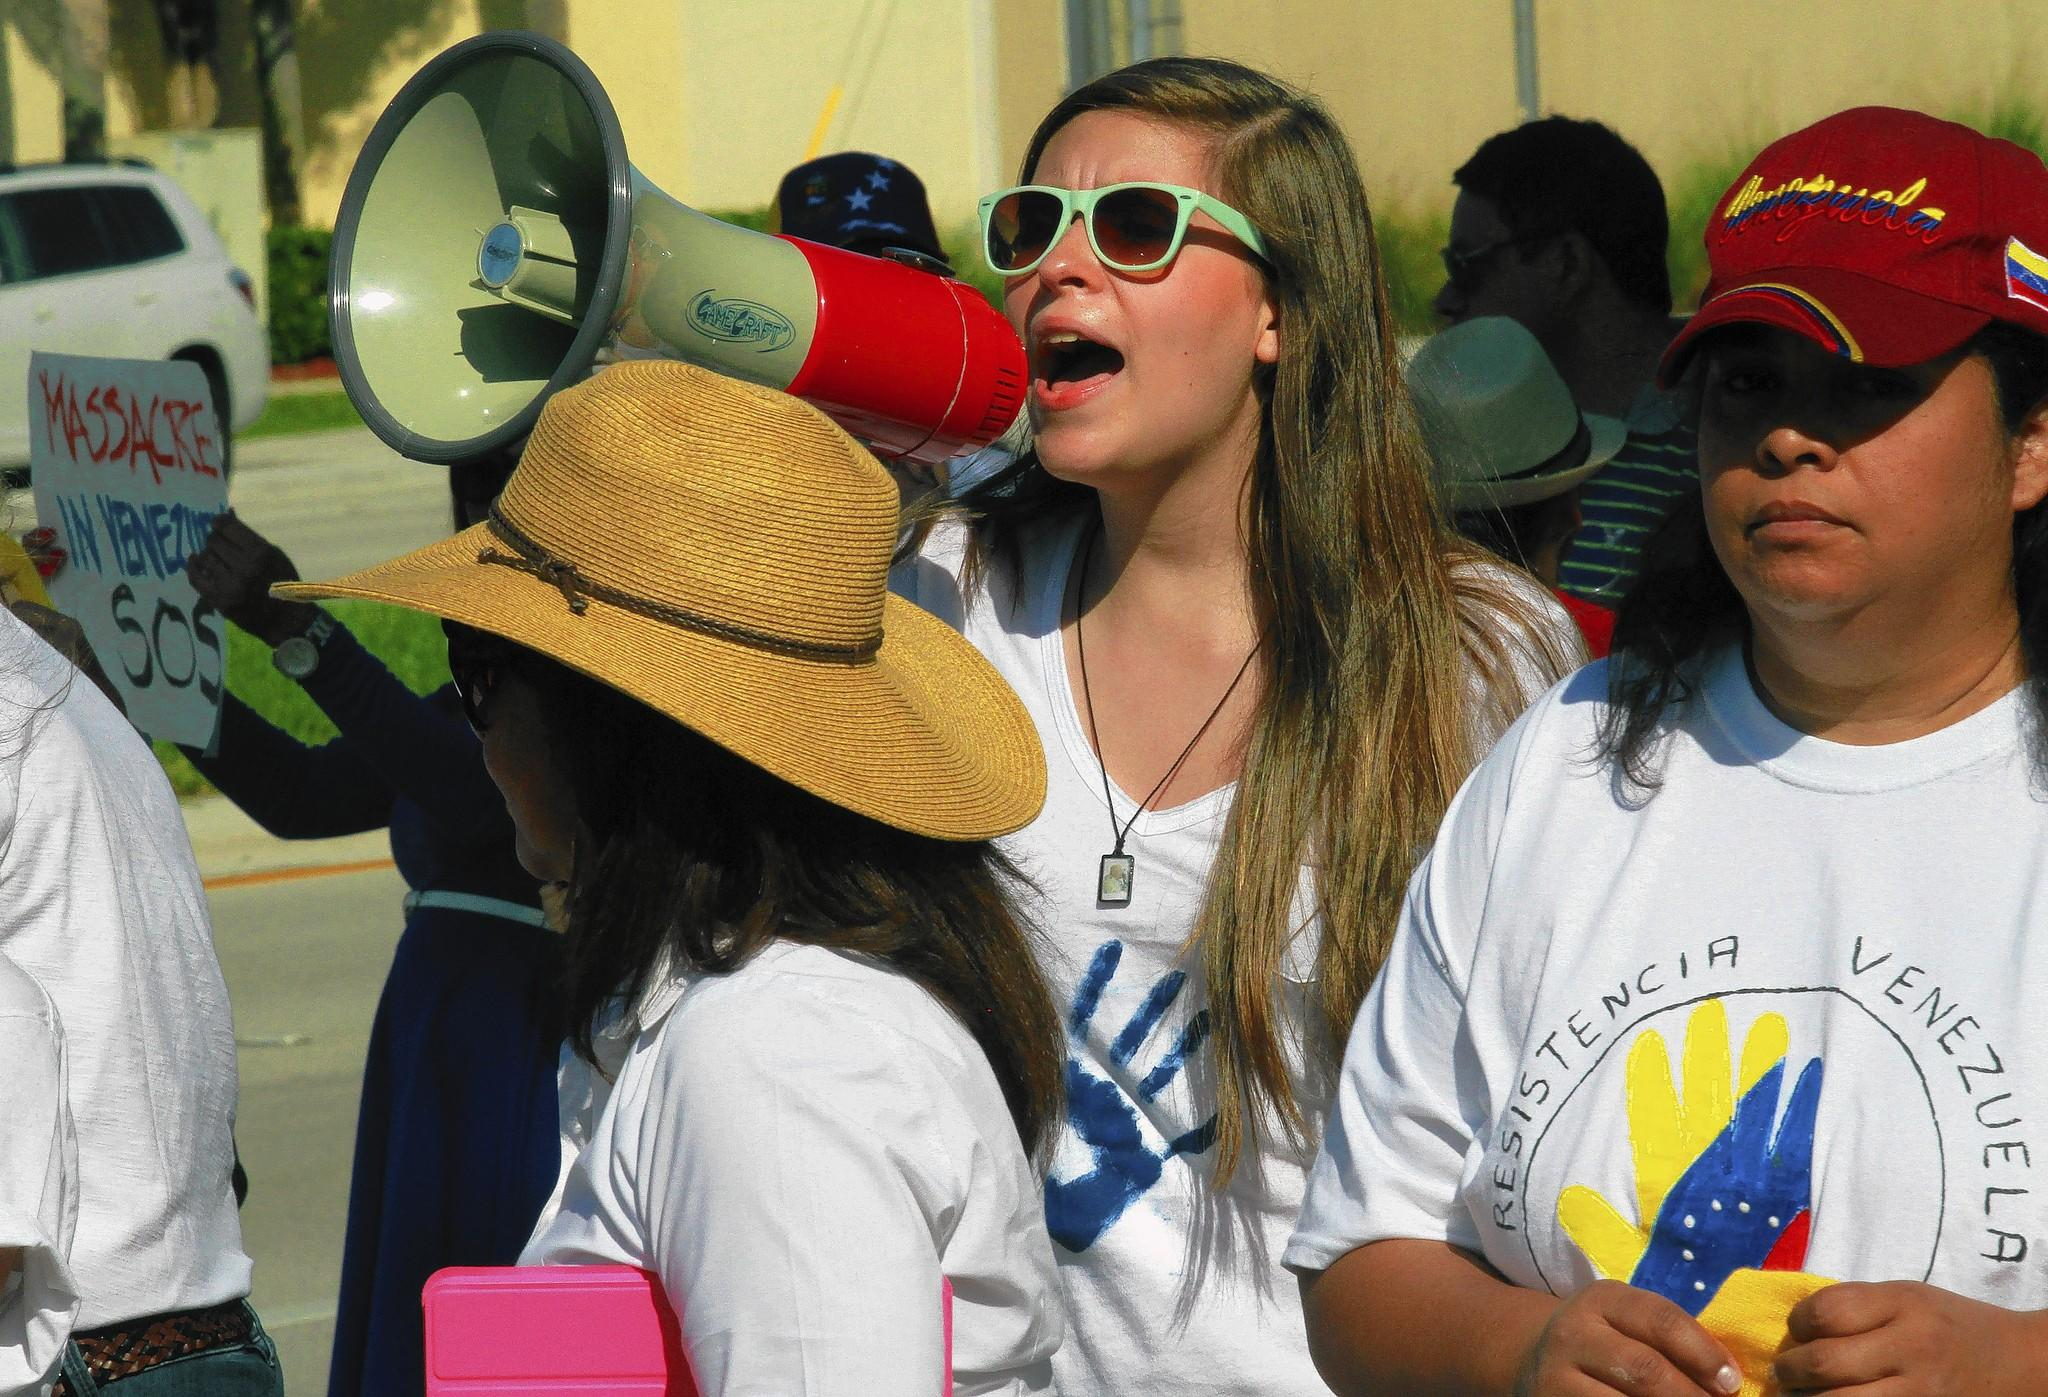 Oriana Bottaro, 15, of Boca Raton, helped organize a rally for fellow Venezuelans on the corner of Glades Road and St. Andrews Avenue near Town Center Mall.